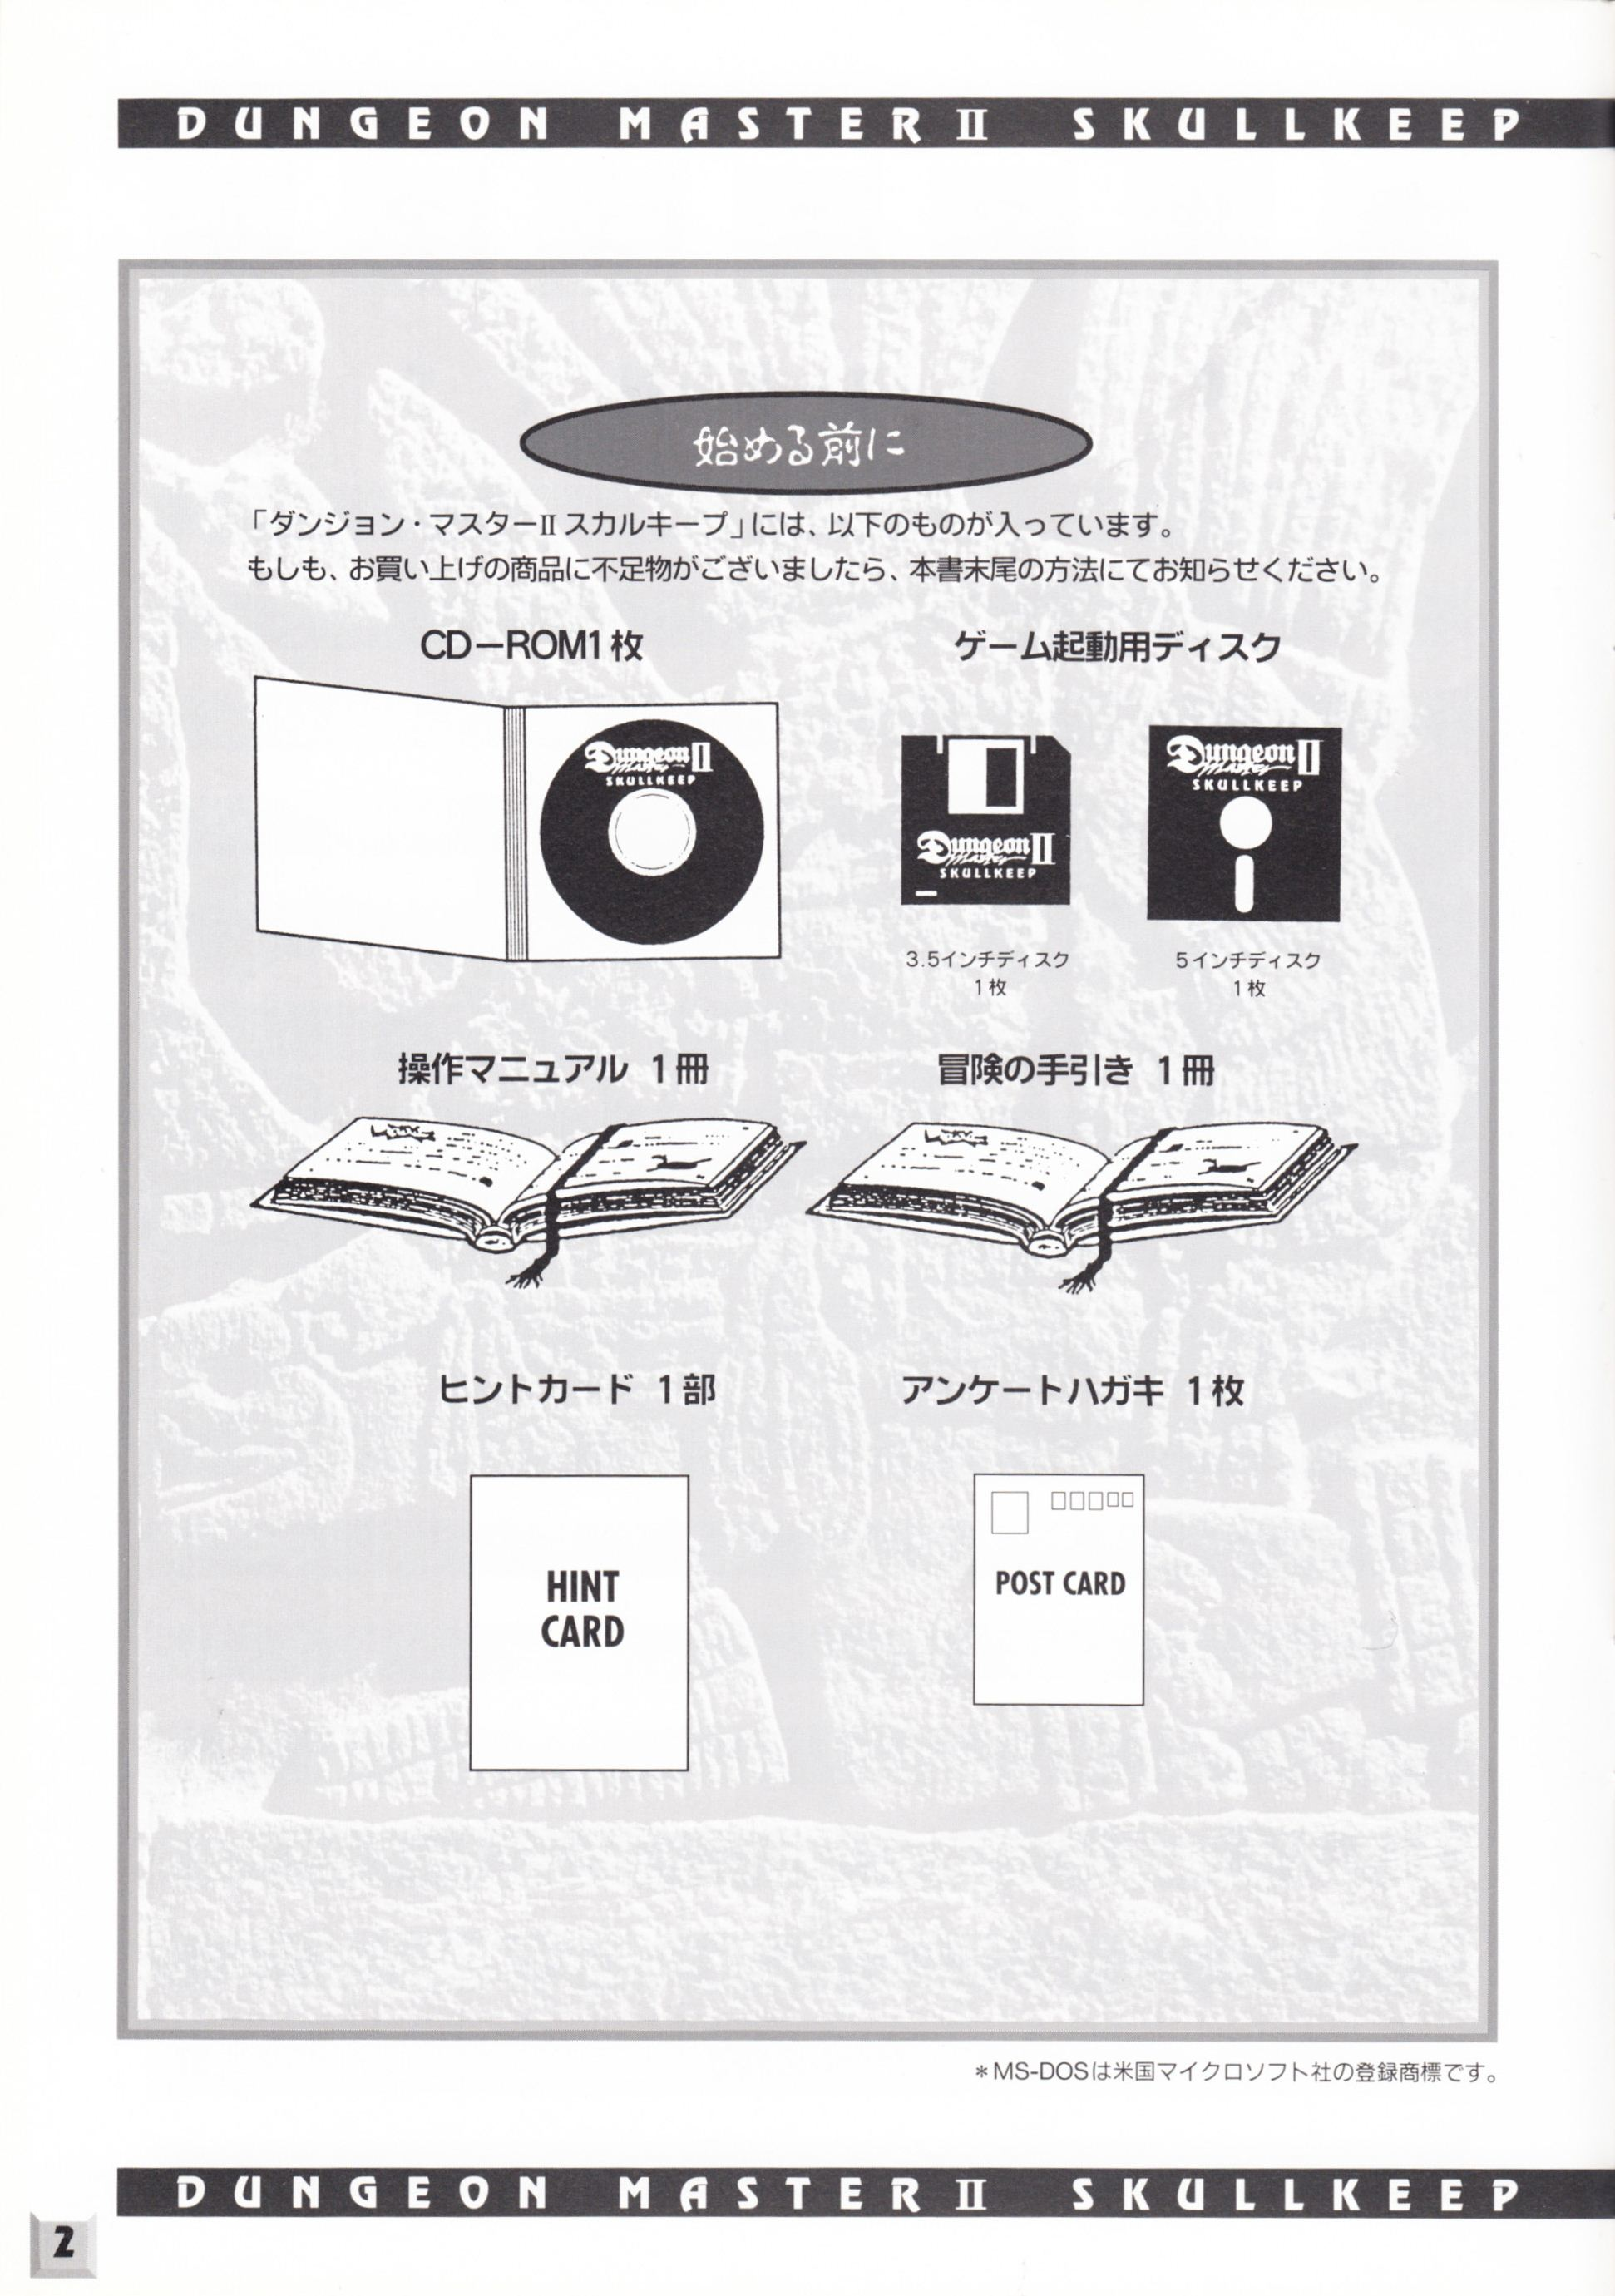 Game - Dungeon Master II - JP - PC-9821 - An Operation Manual - Page 004 - Scan